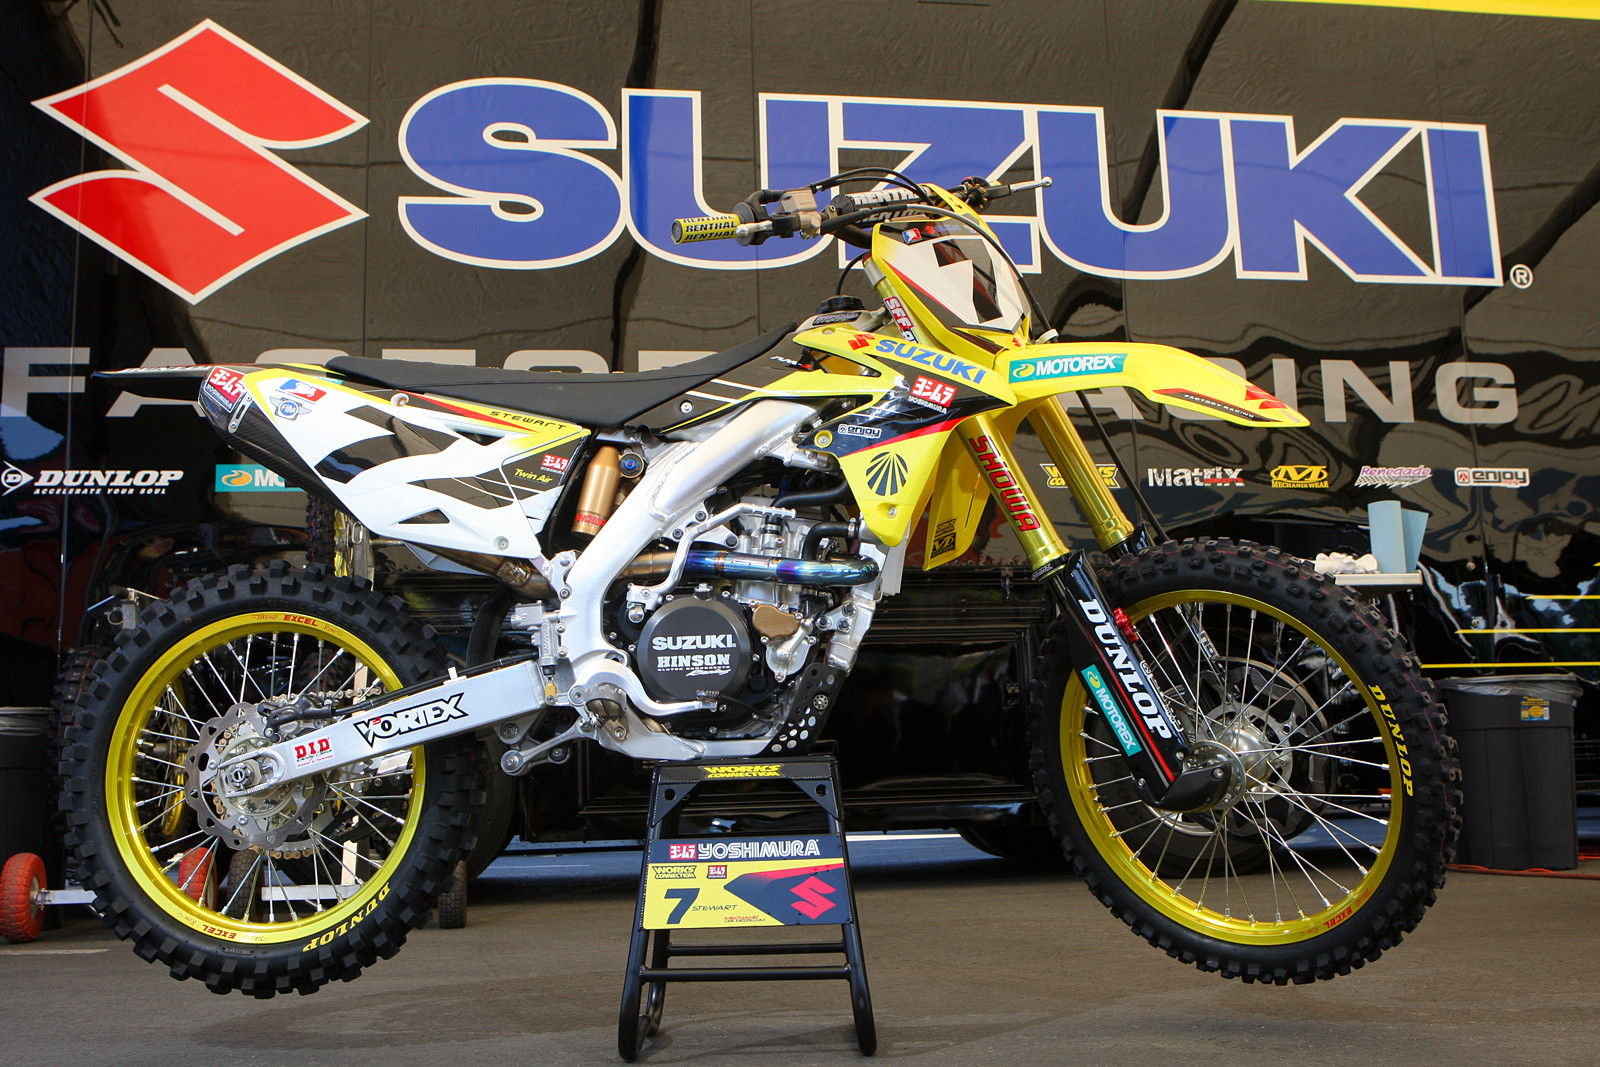 James Stewart - Bikes of Supercross 2013 - Motocross Pictures - Vital MX